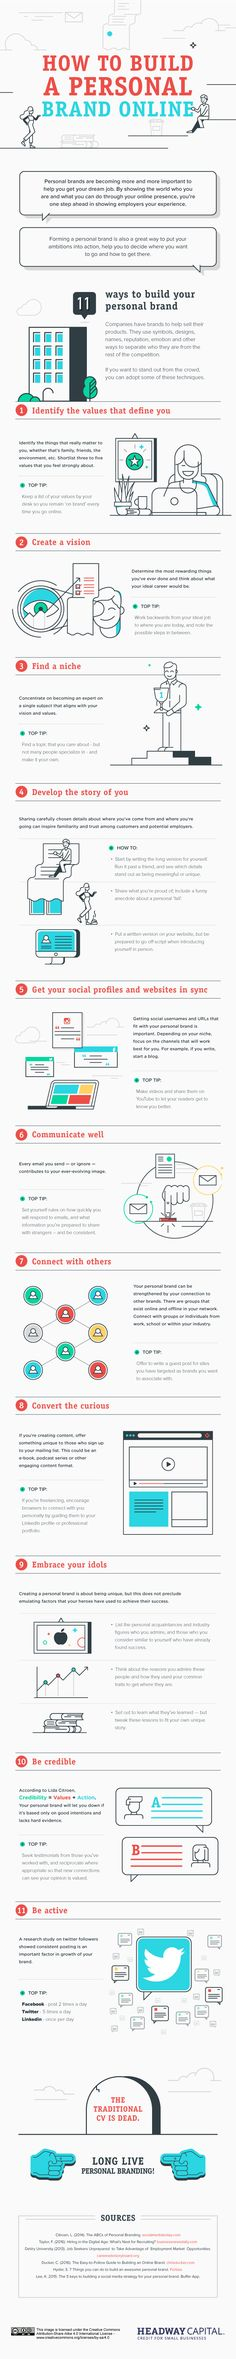 How to Build a Personal Brand Online [Infographic] | Social Media Today